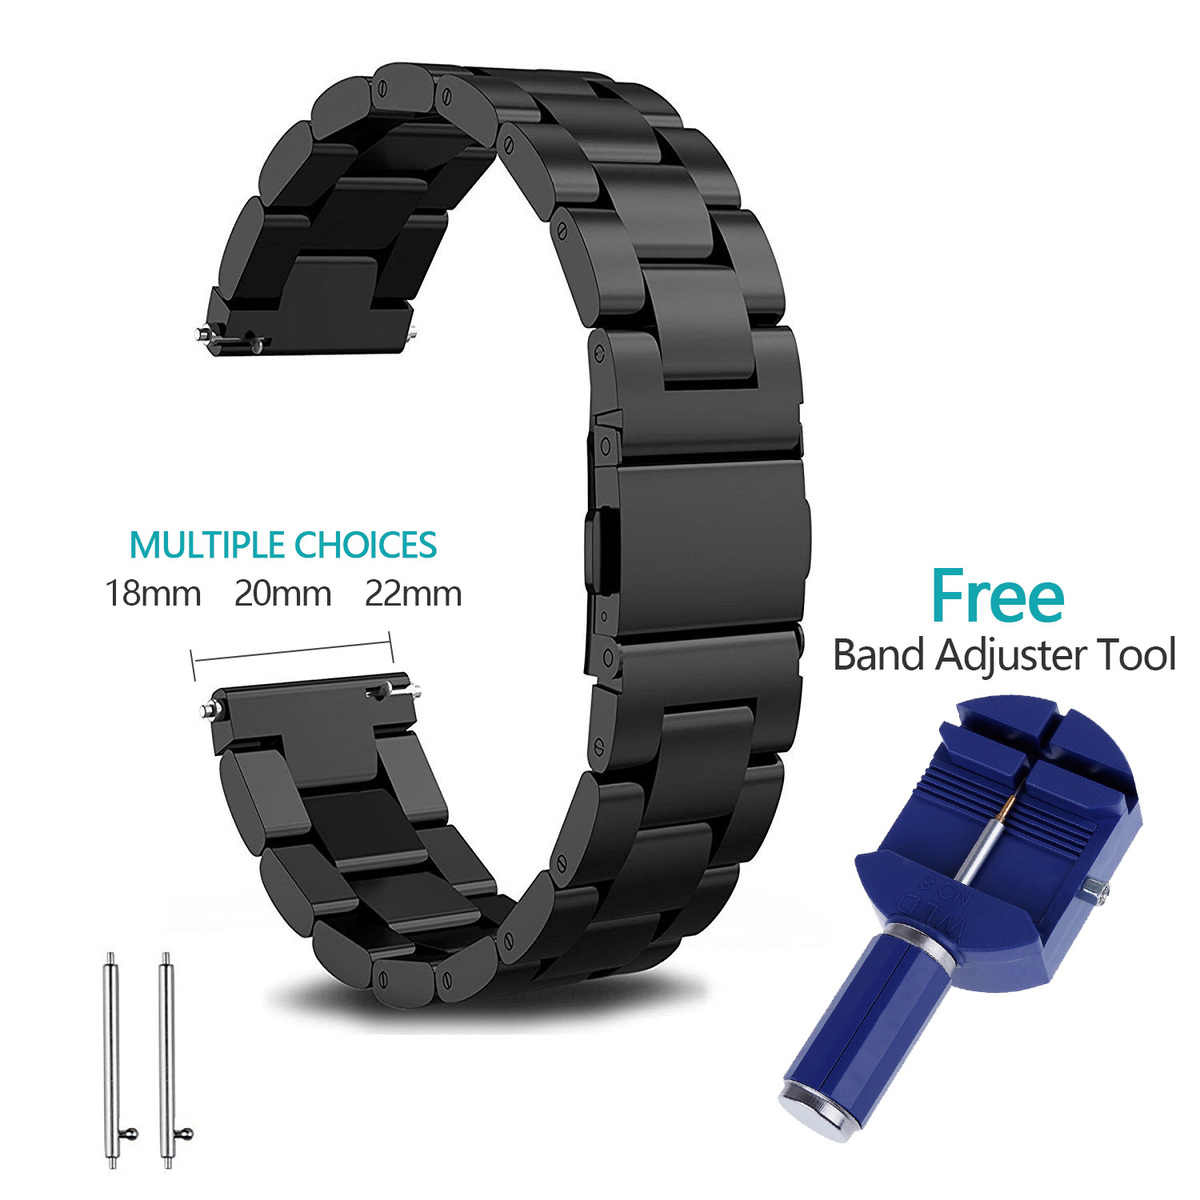 18 Mm 20 Mm 22 Mm Stainless Steel Watch Band Tali untuk Samsung Gear S2 S3 Smart Watch Link Gelang hitam untuk Gear S2 Pengganti